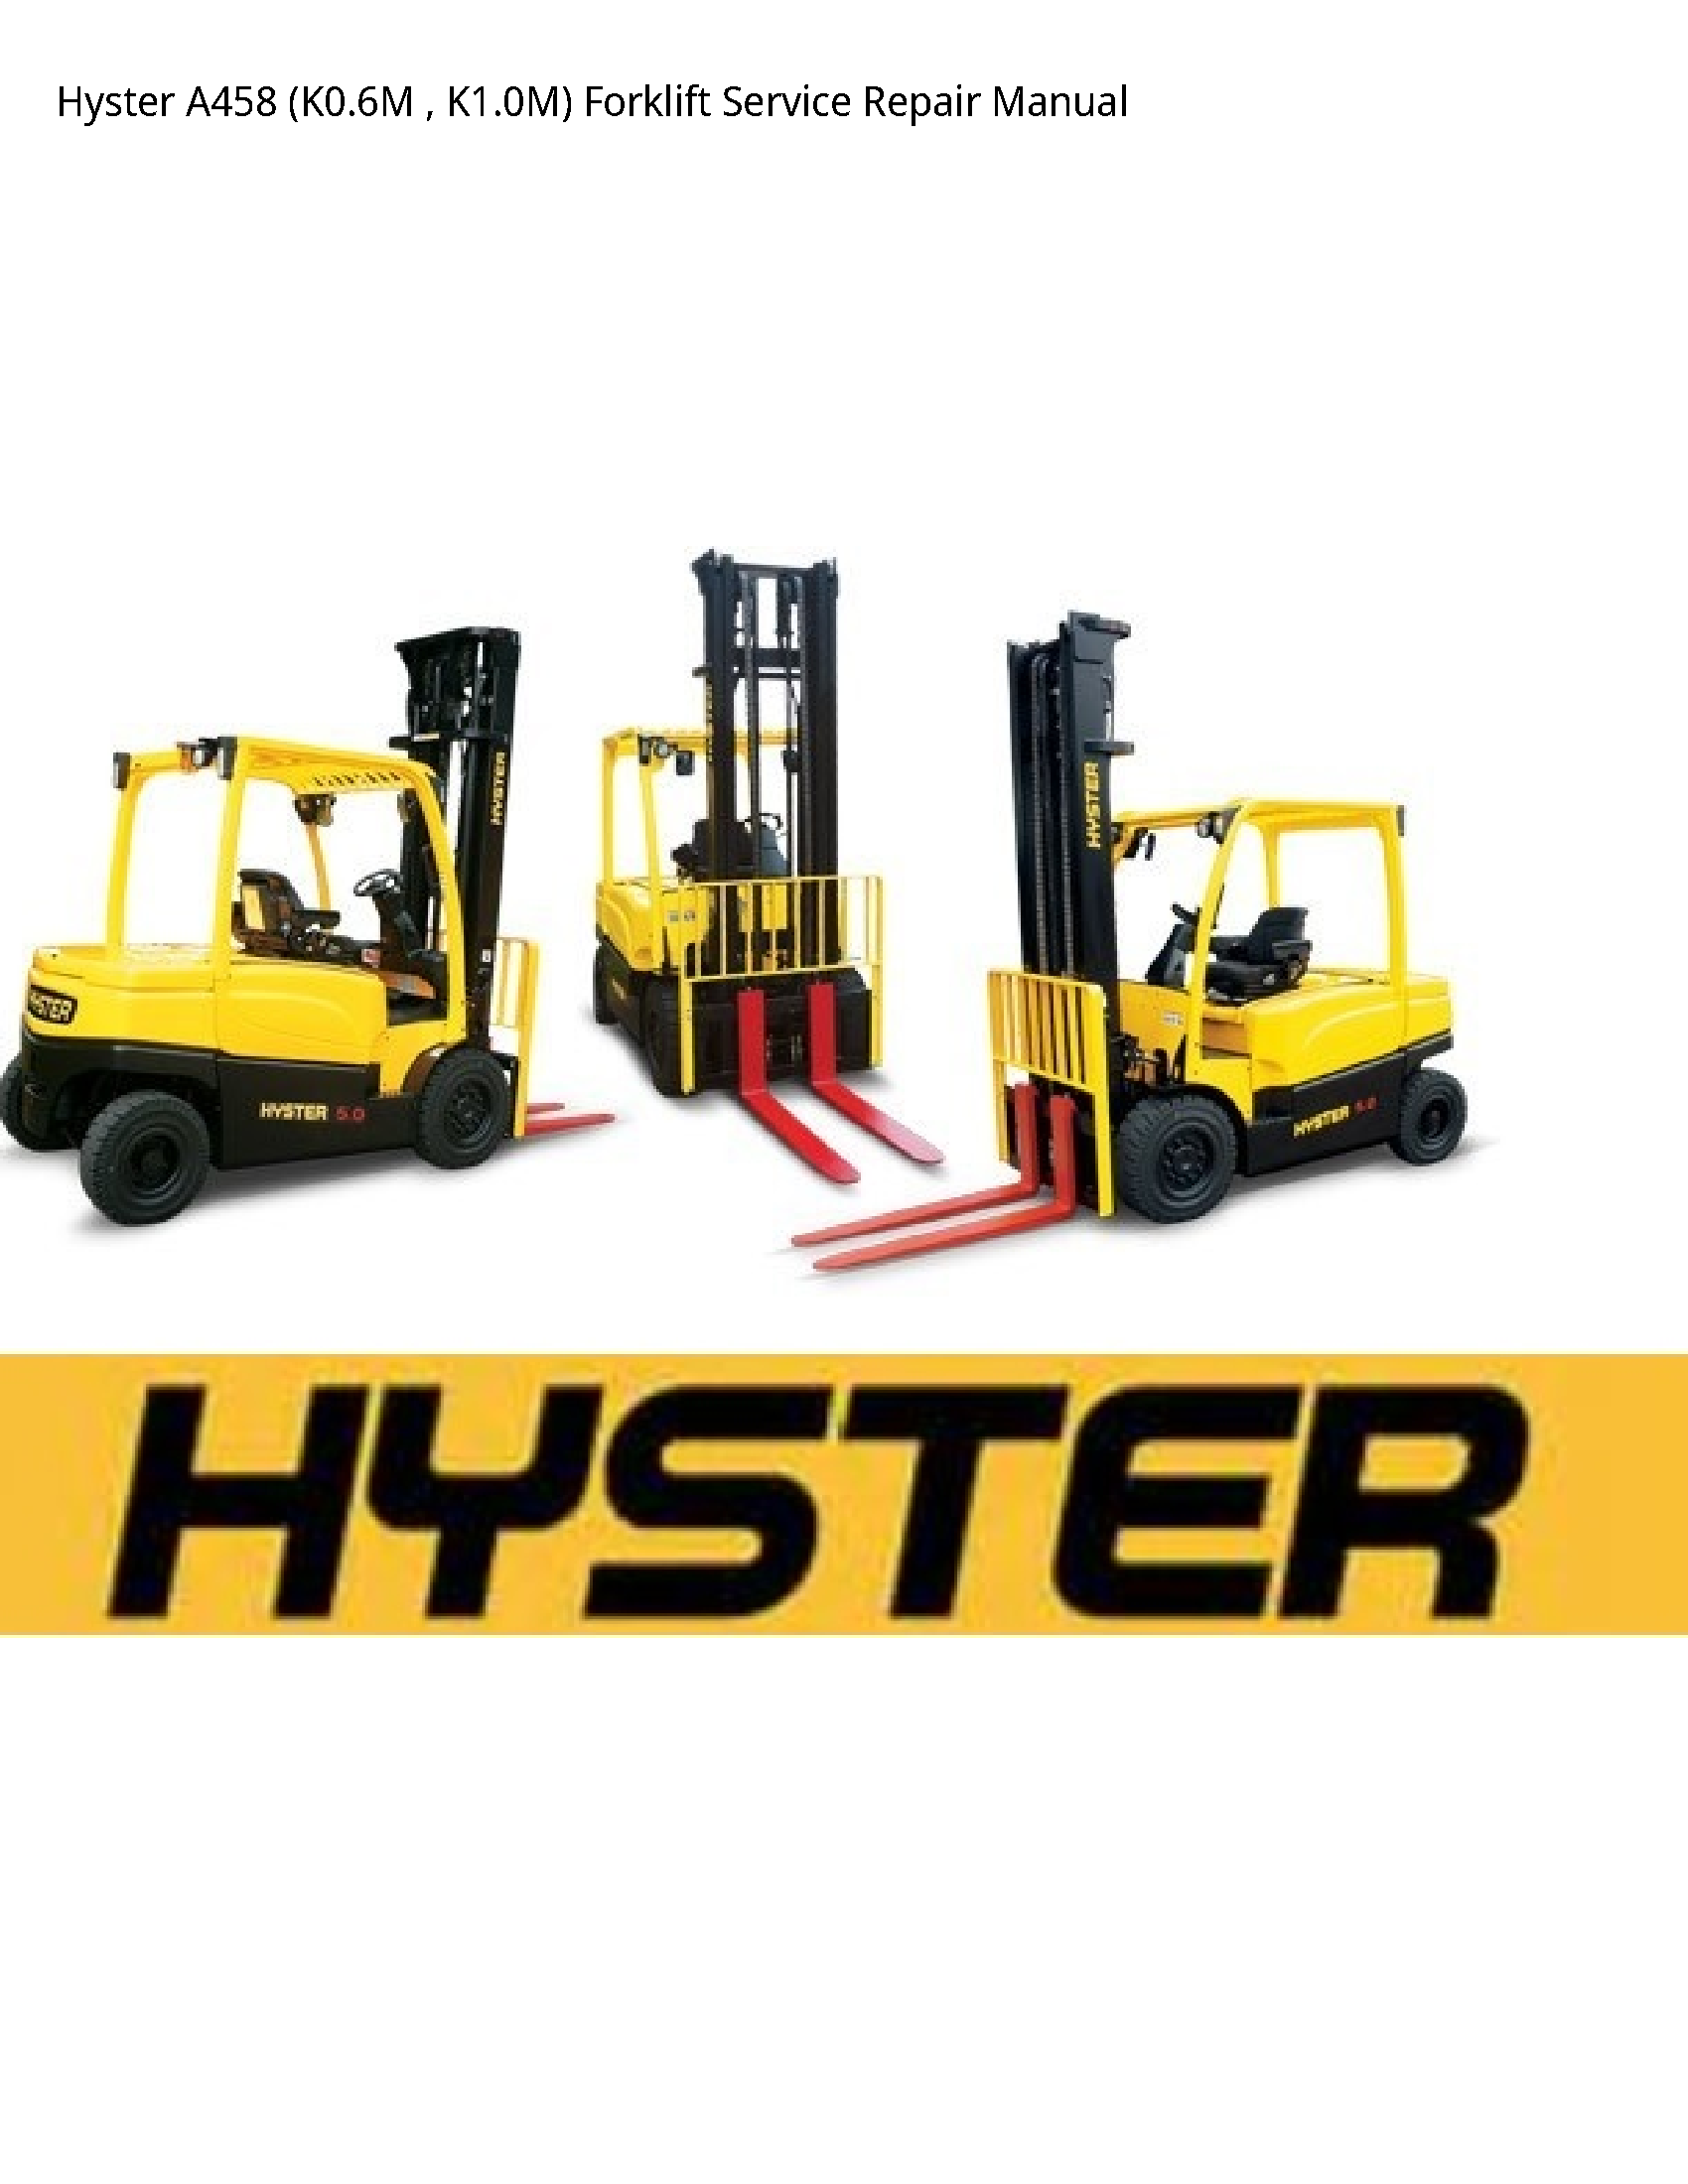 Hyster A458 Forklift manual